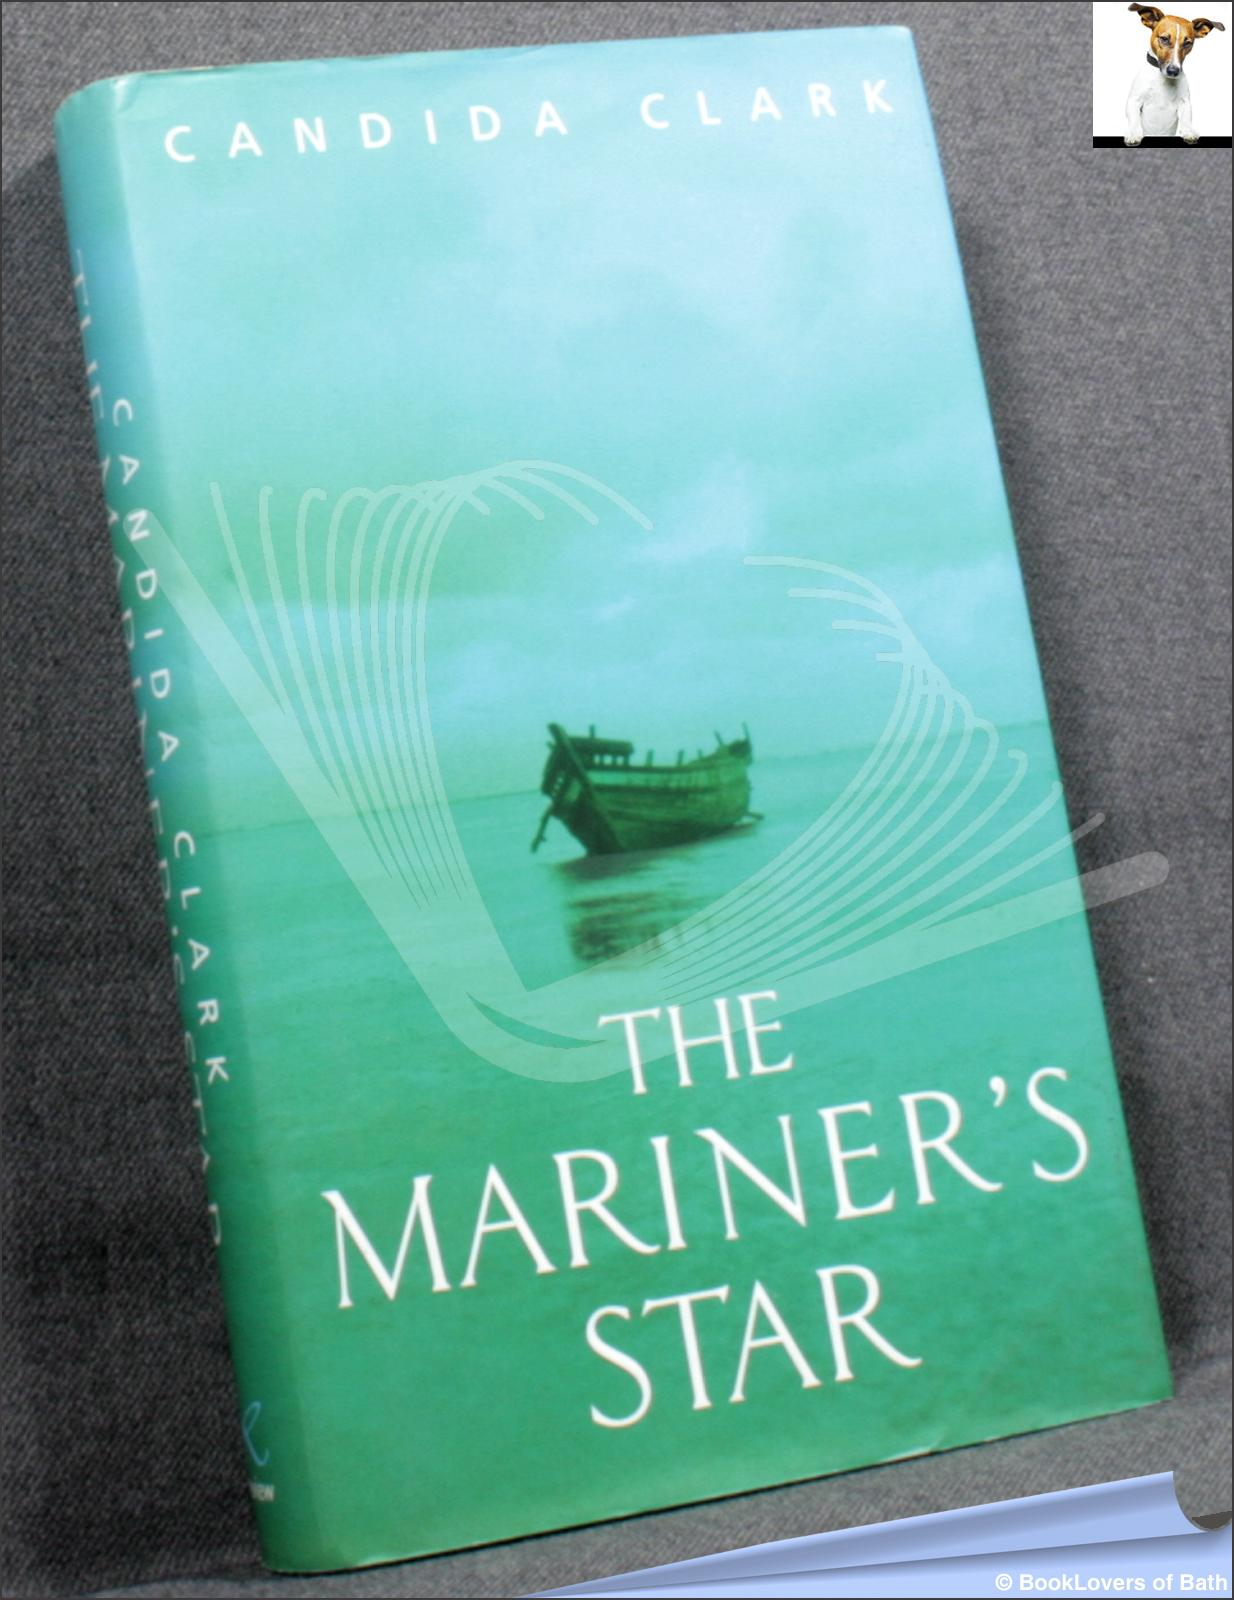 The Mariner's Star - Candida Clark